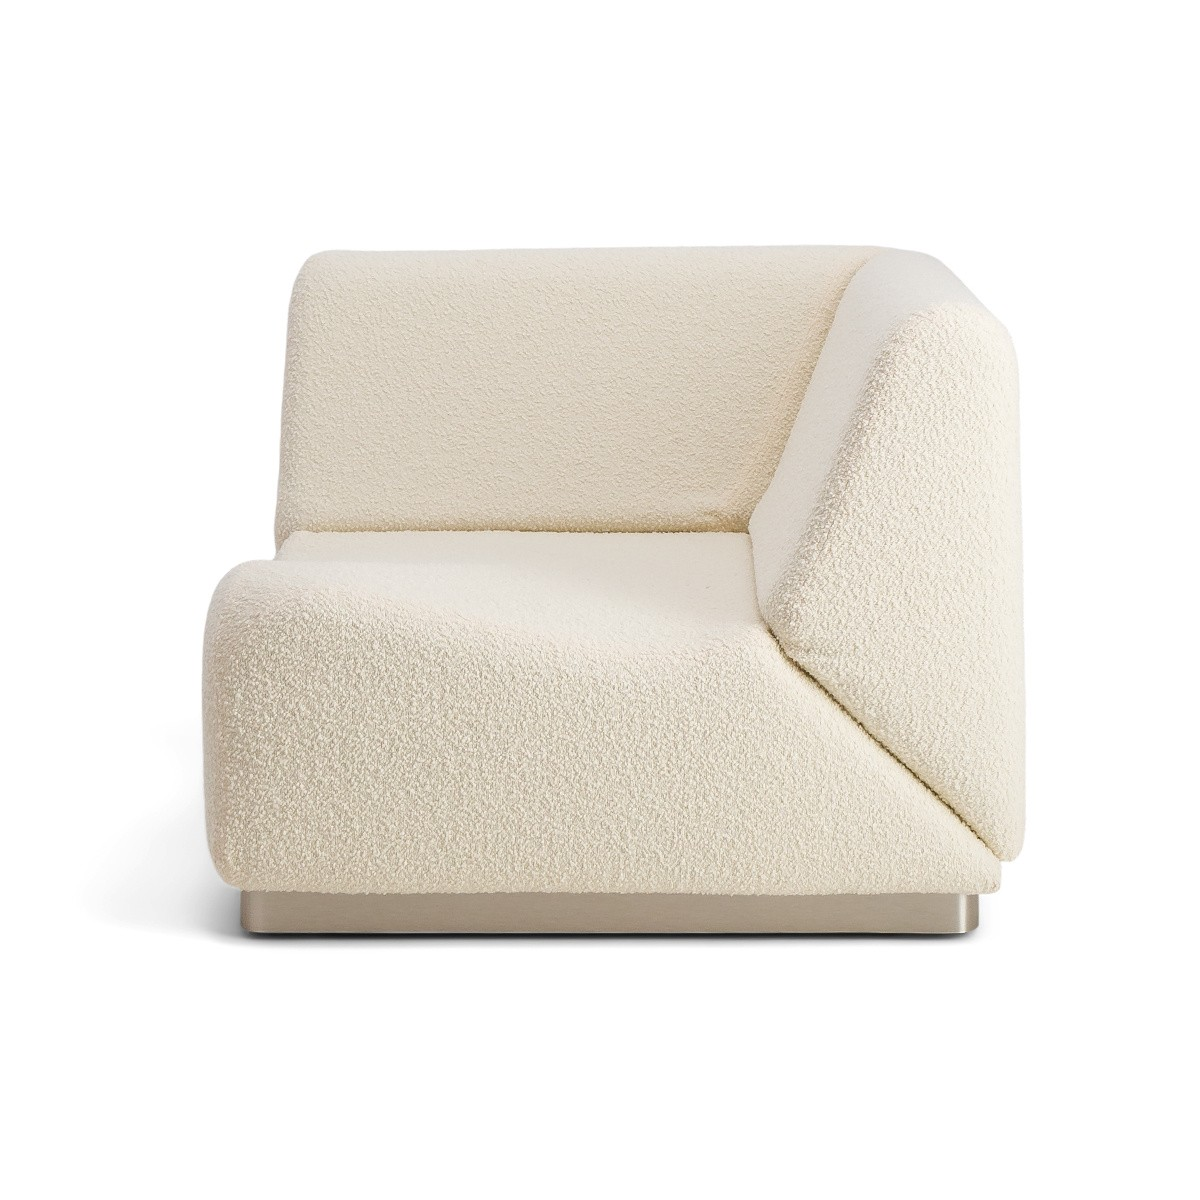 Rotondo Corner Module in Cream White Curly Wool